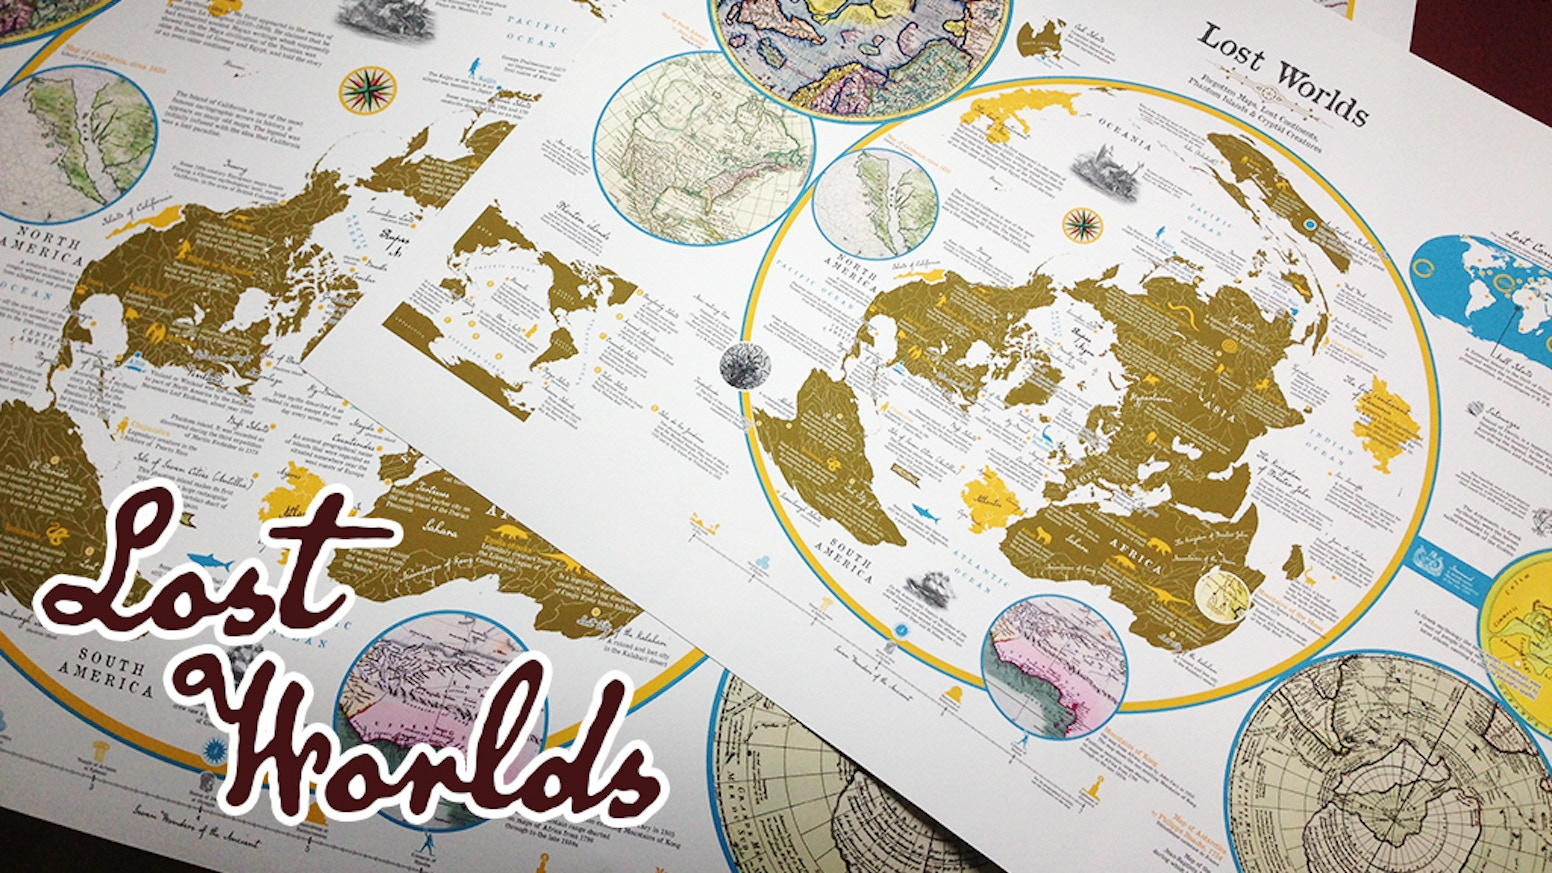 An amazing fantasy map of lost continents, phantom islands and mythical creatures